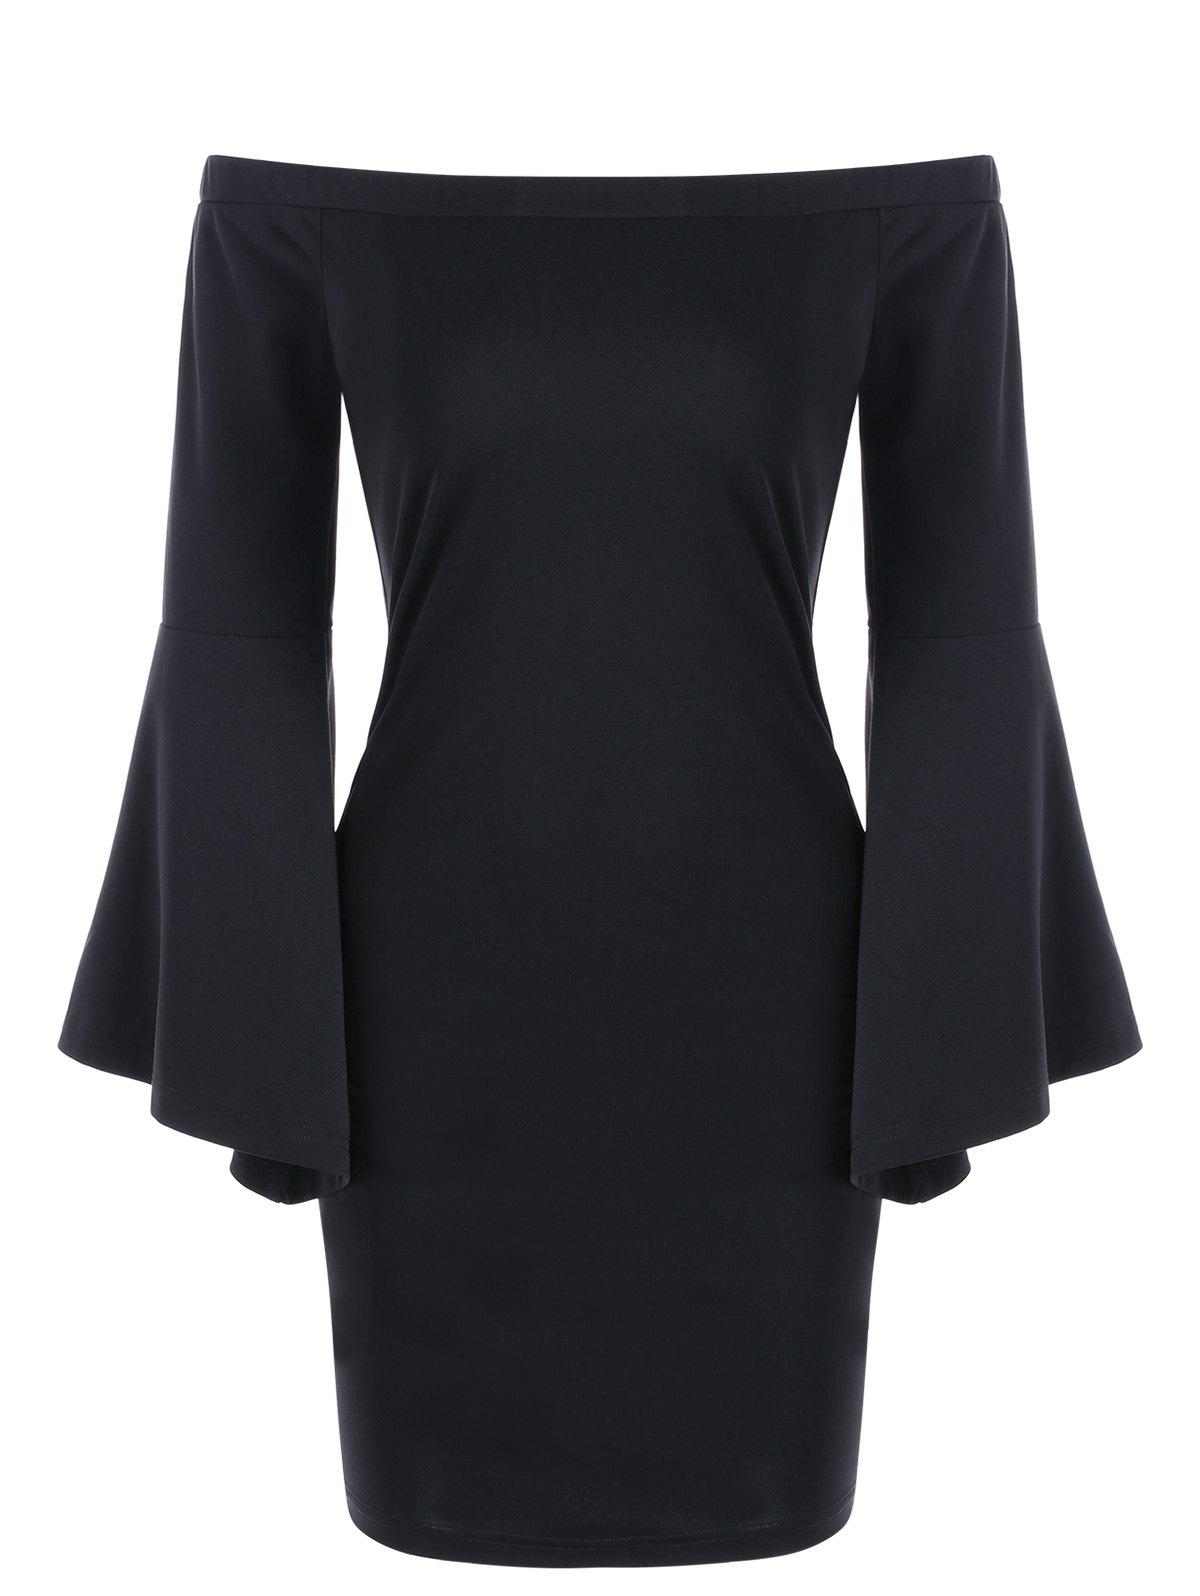 Off The Shoulder Flare Sleeve Sheath Dress - BLACK L